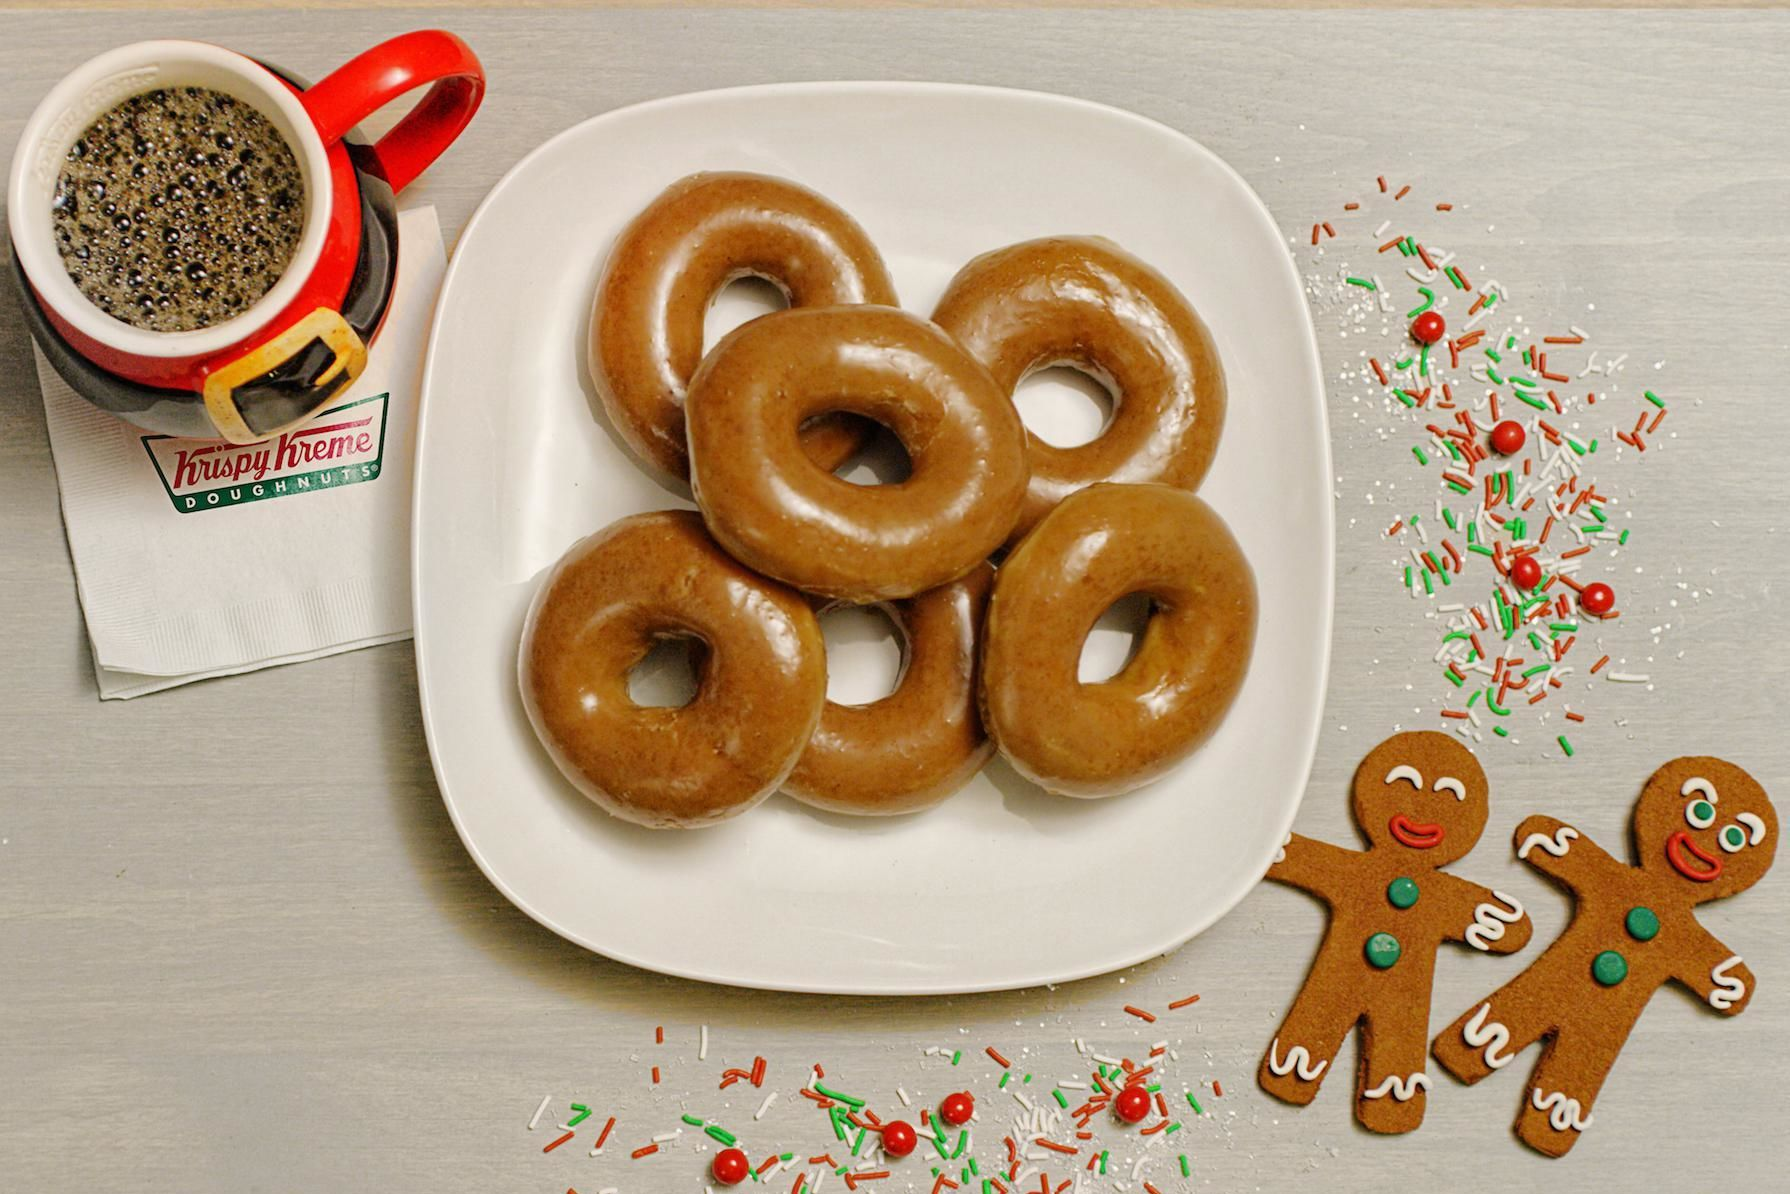 Krispy Kreme's Gingerbread Doughnuts Are Coming Back